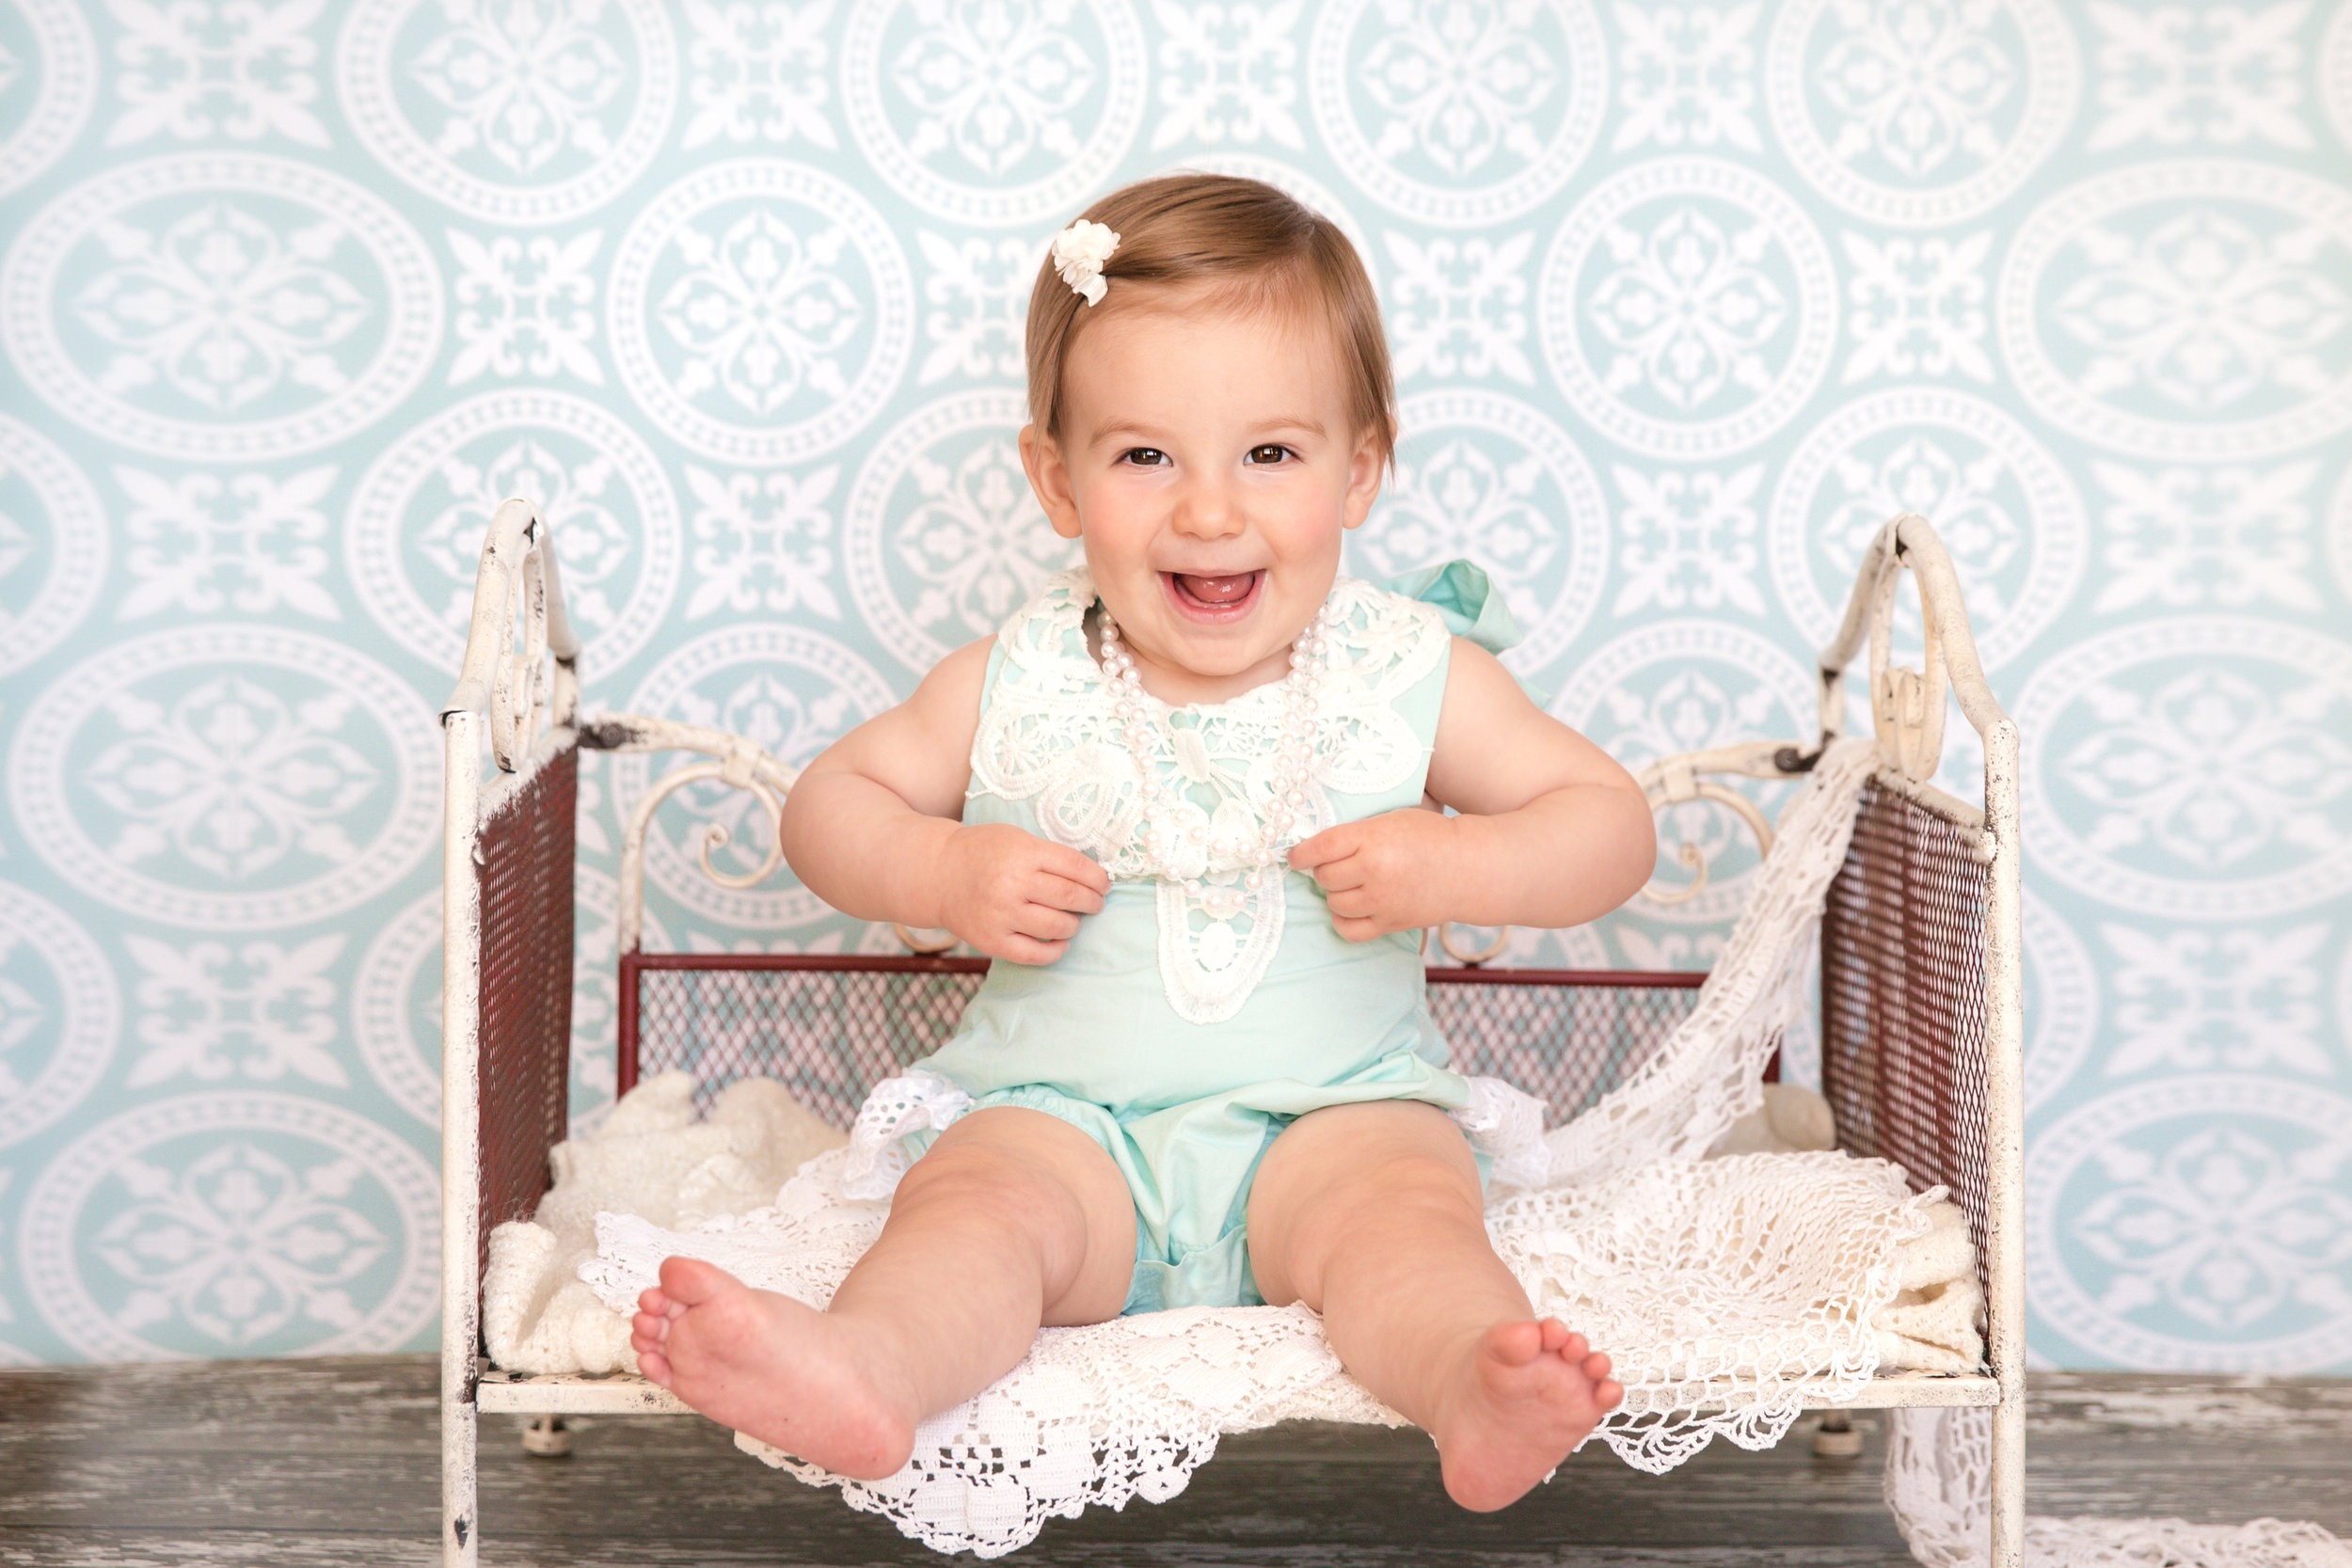 Baby girl sitting on an antique bed wearing cute outfit, pearls and smiling. Calgary baby photographer. Milashka Photography.